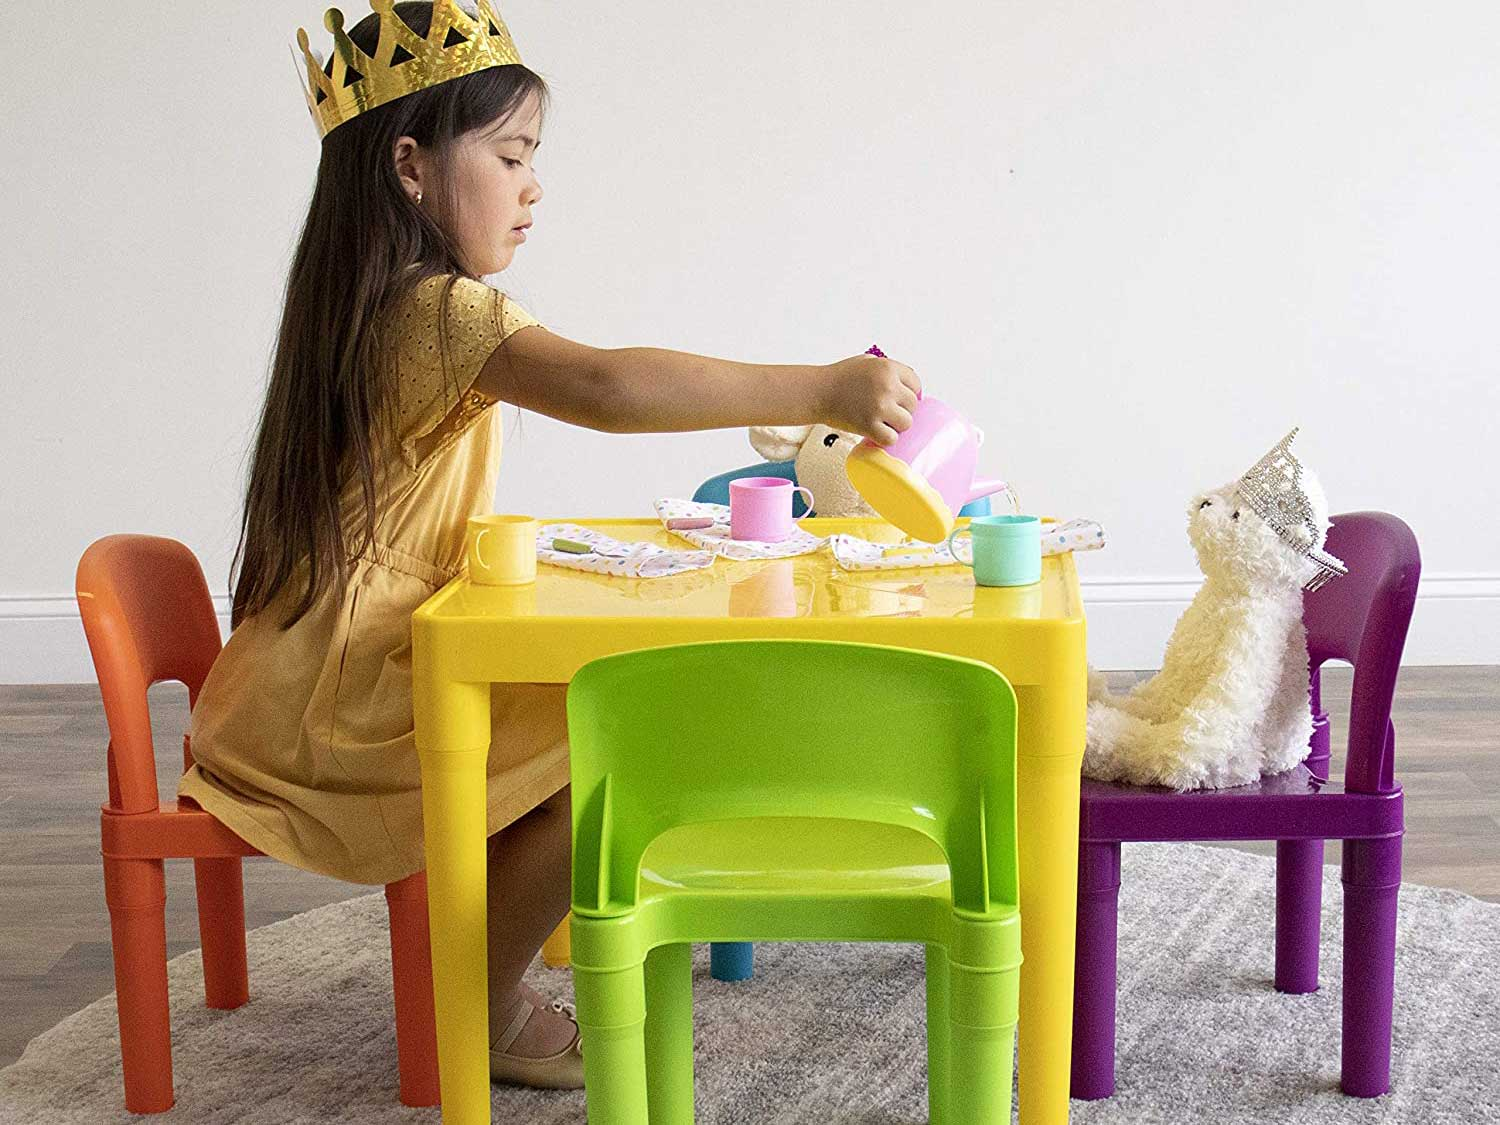 Toddler having tea party with table and chair set and stuffed animals.